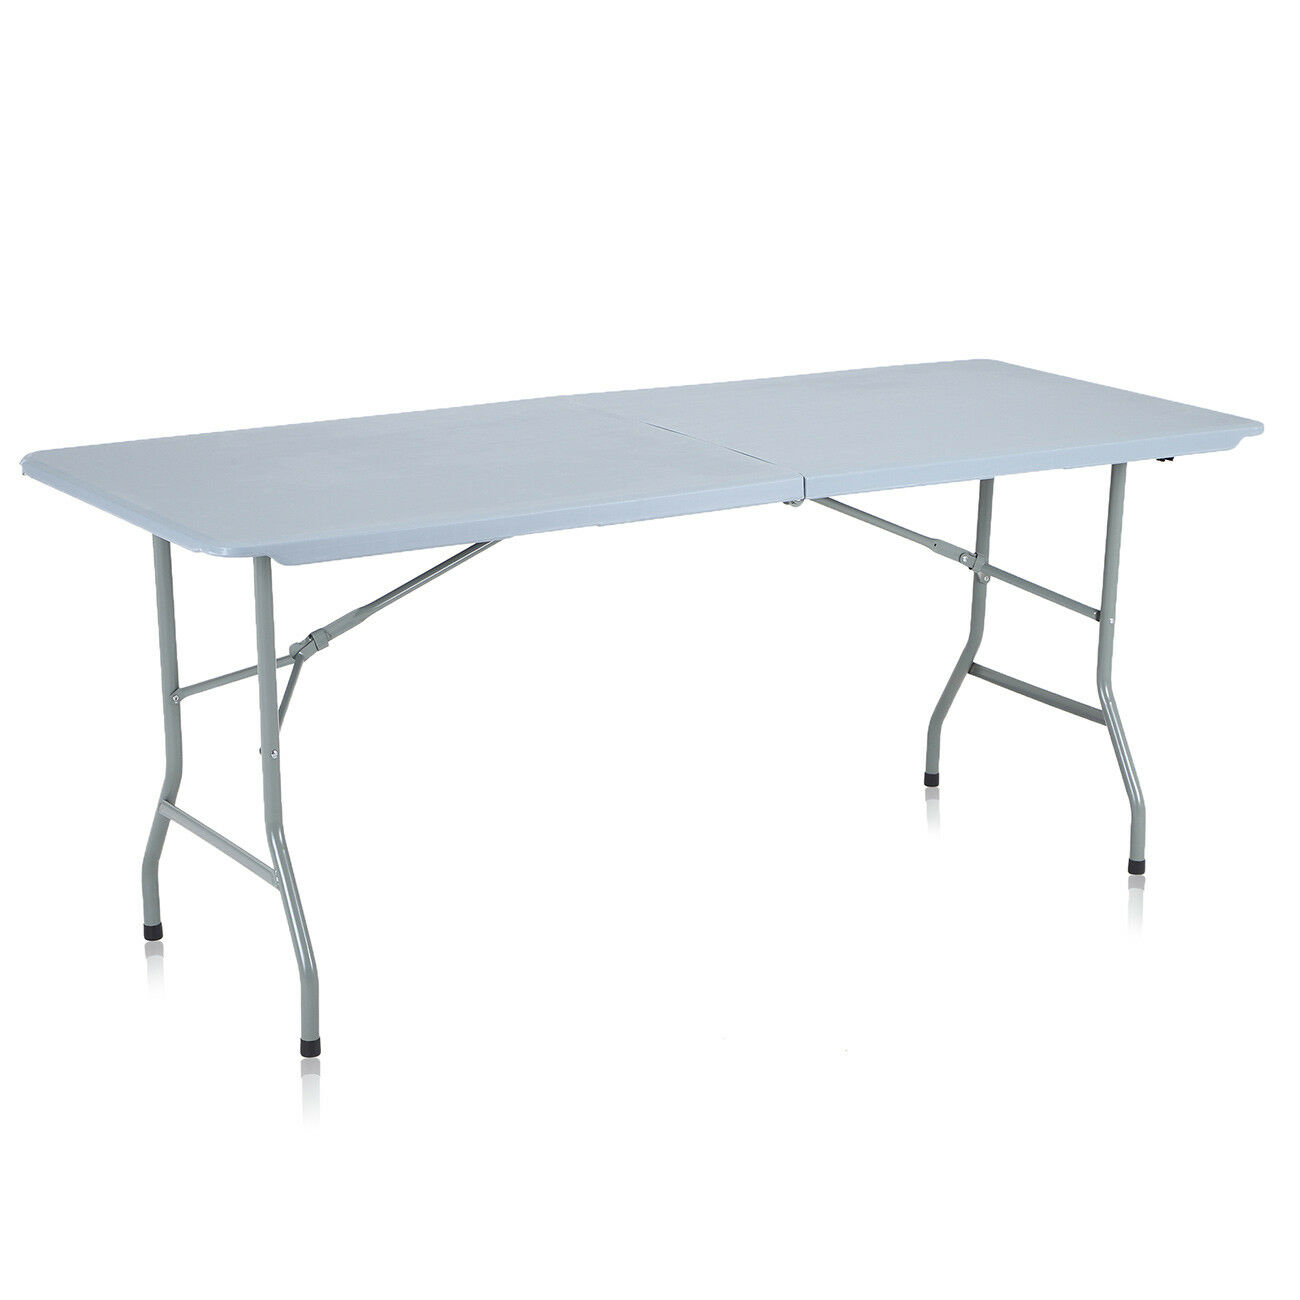 Camping Table Folding Garden Table Picnic Table Portable Plastic Leightweight